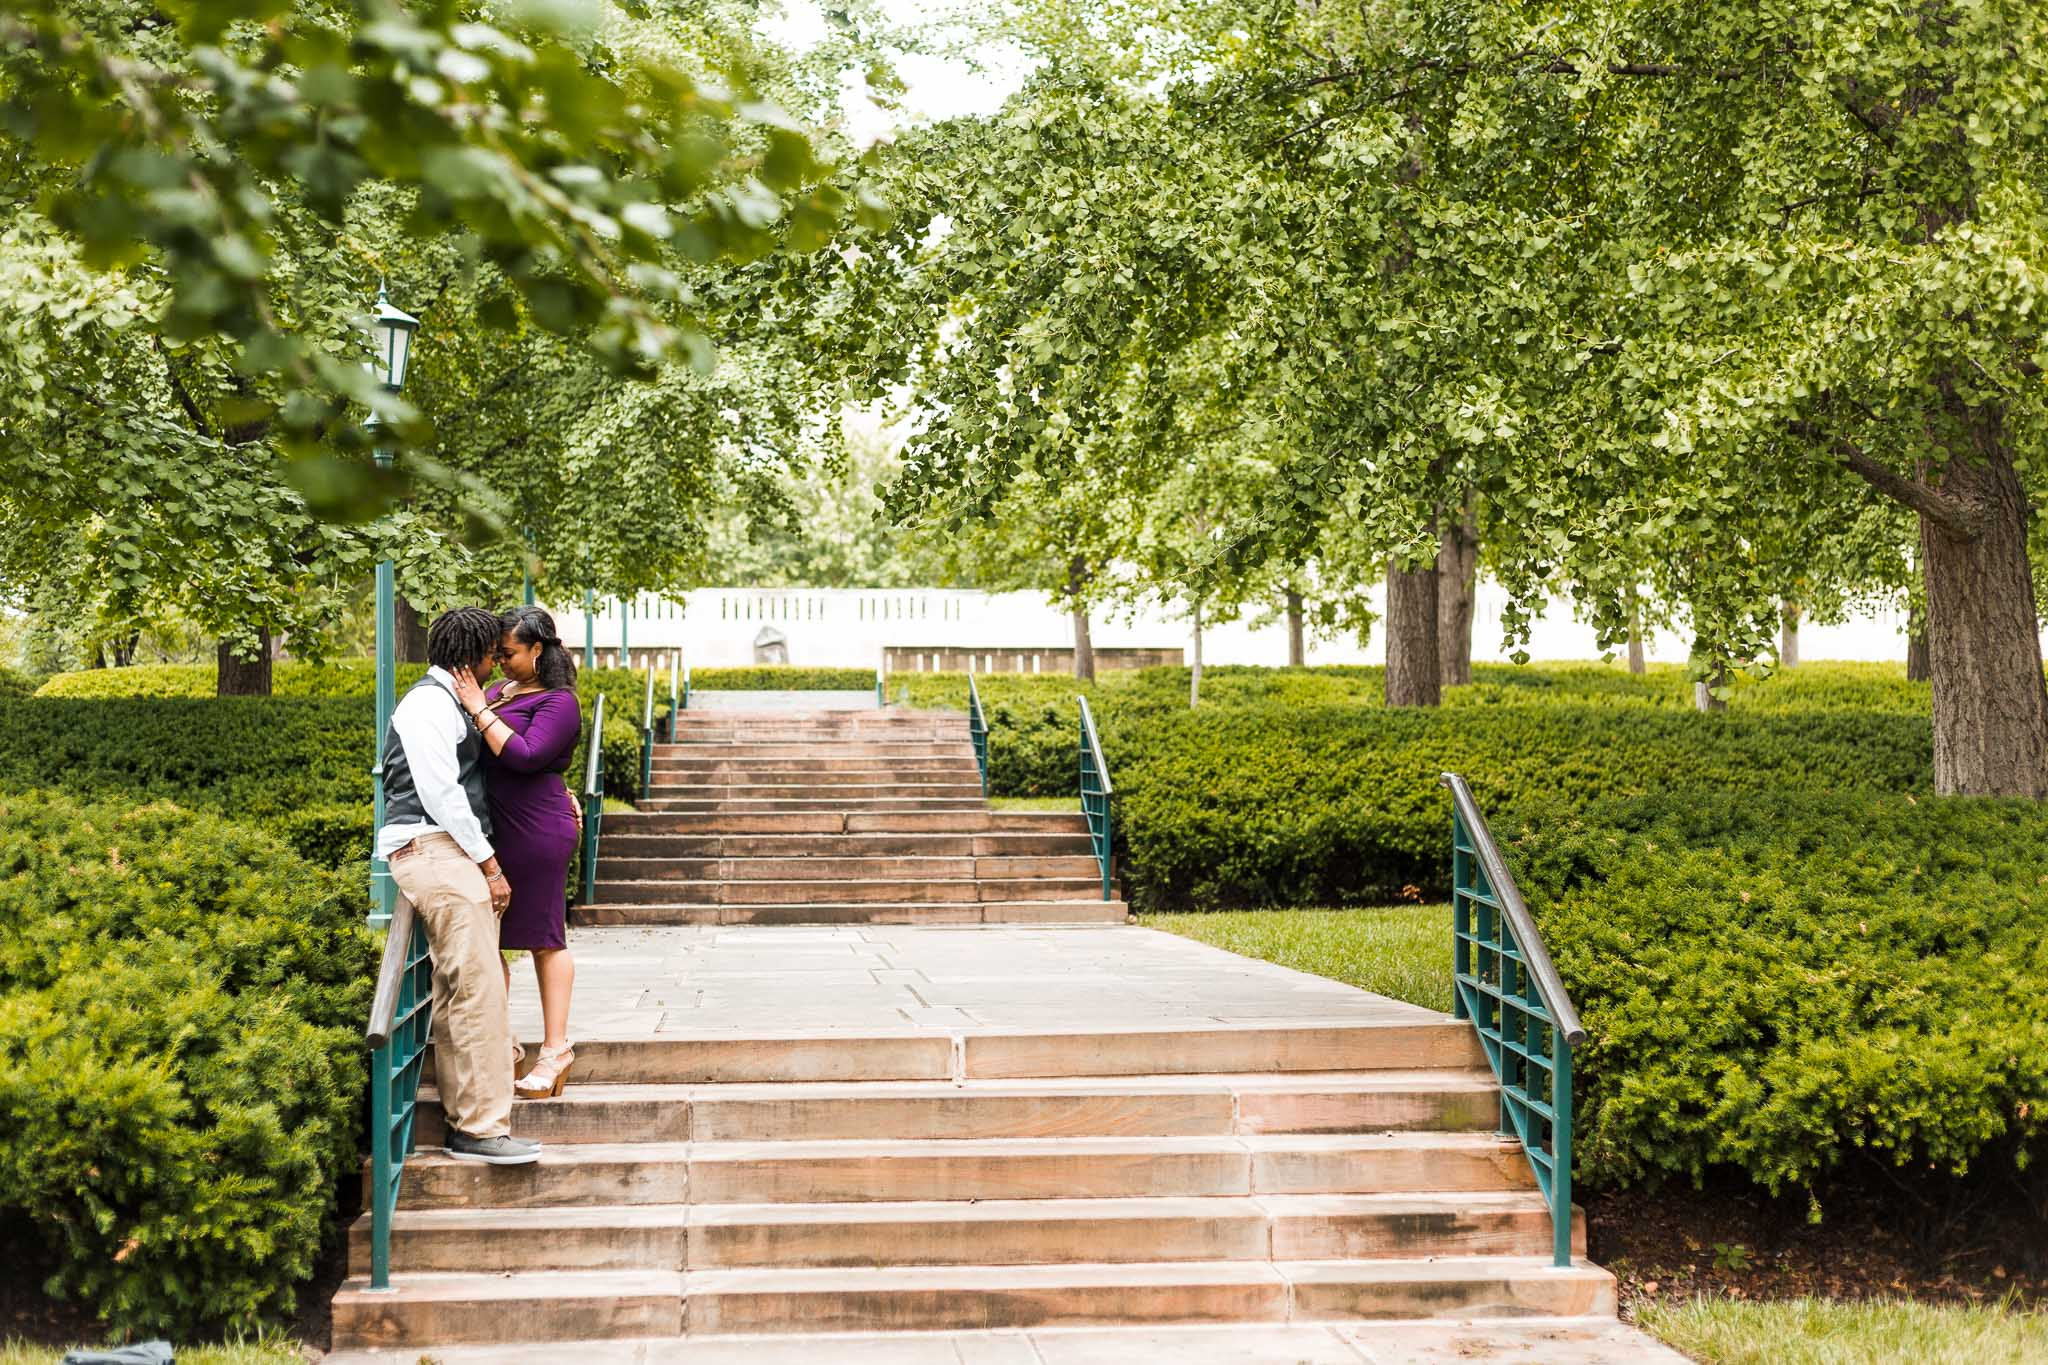 st-louis-wedding-photographer-nelson-atkins-engagement-33.jpg